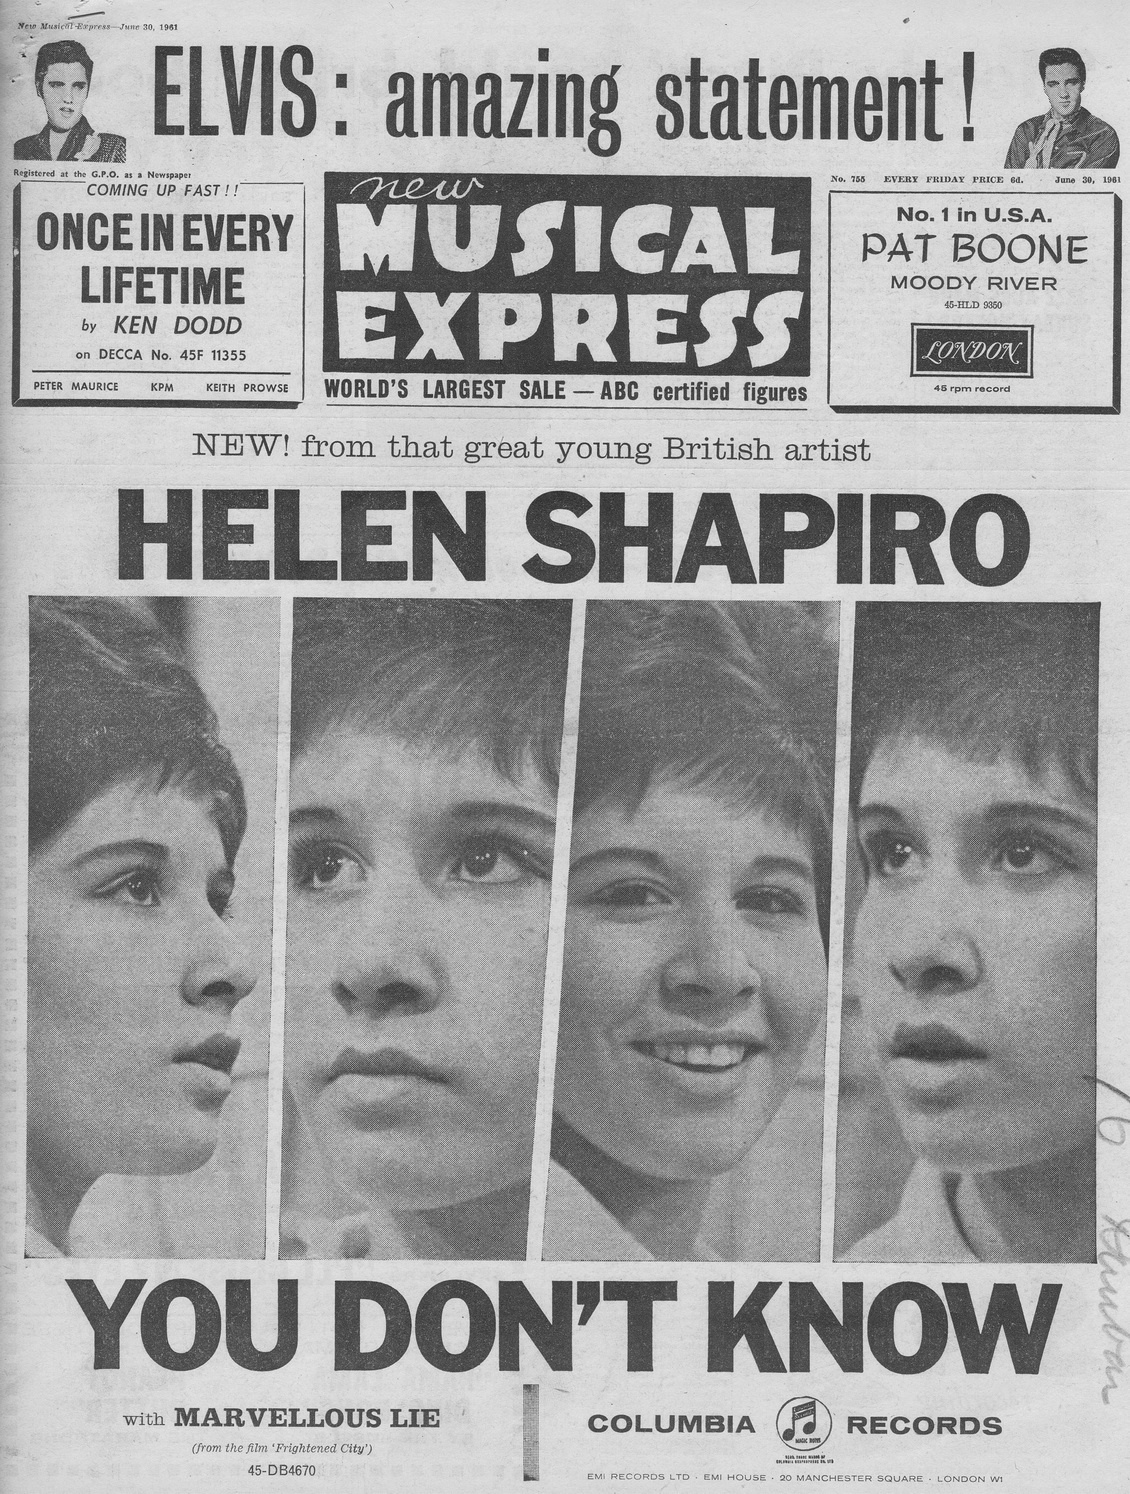 New Musical Express 30th June 1961